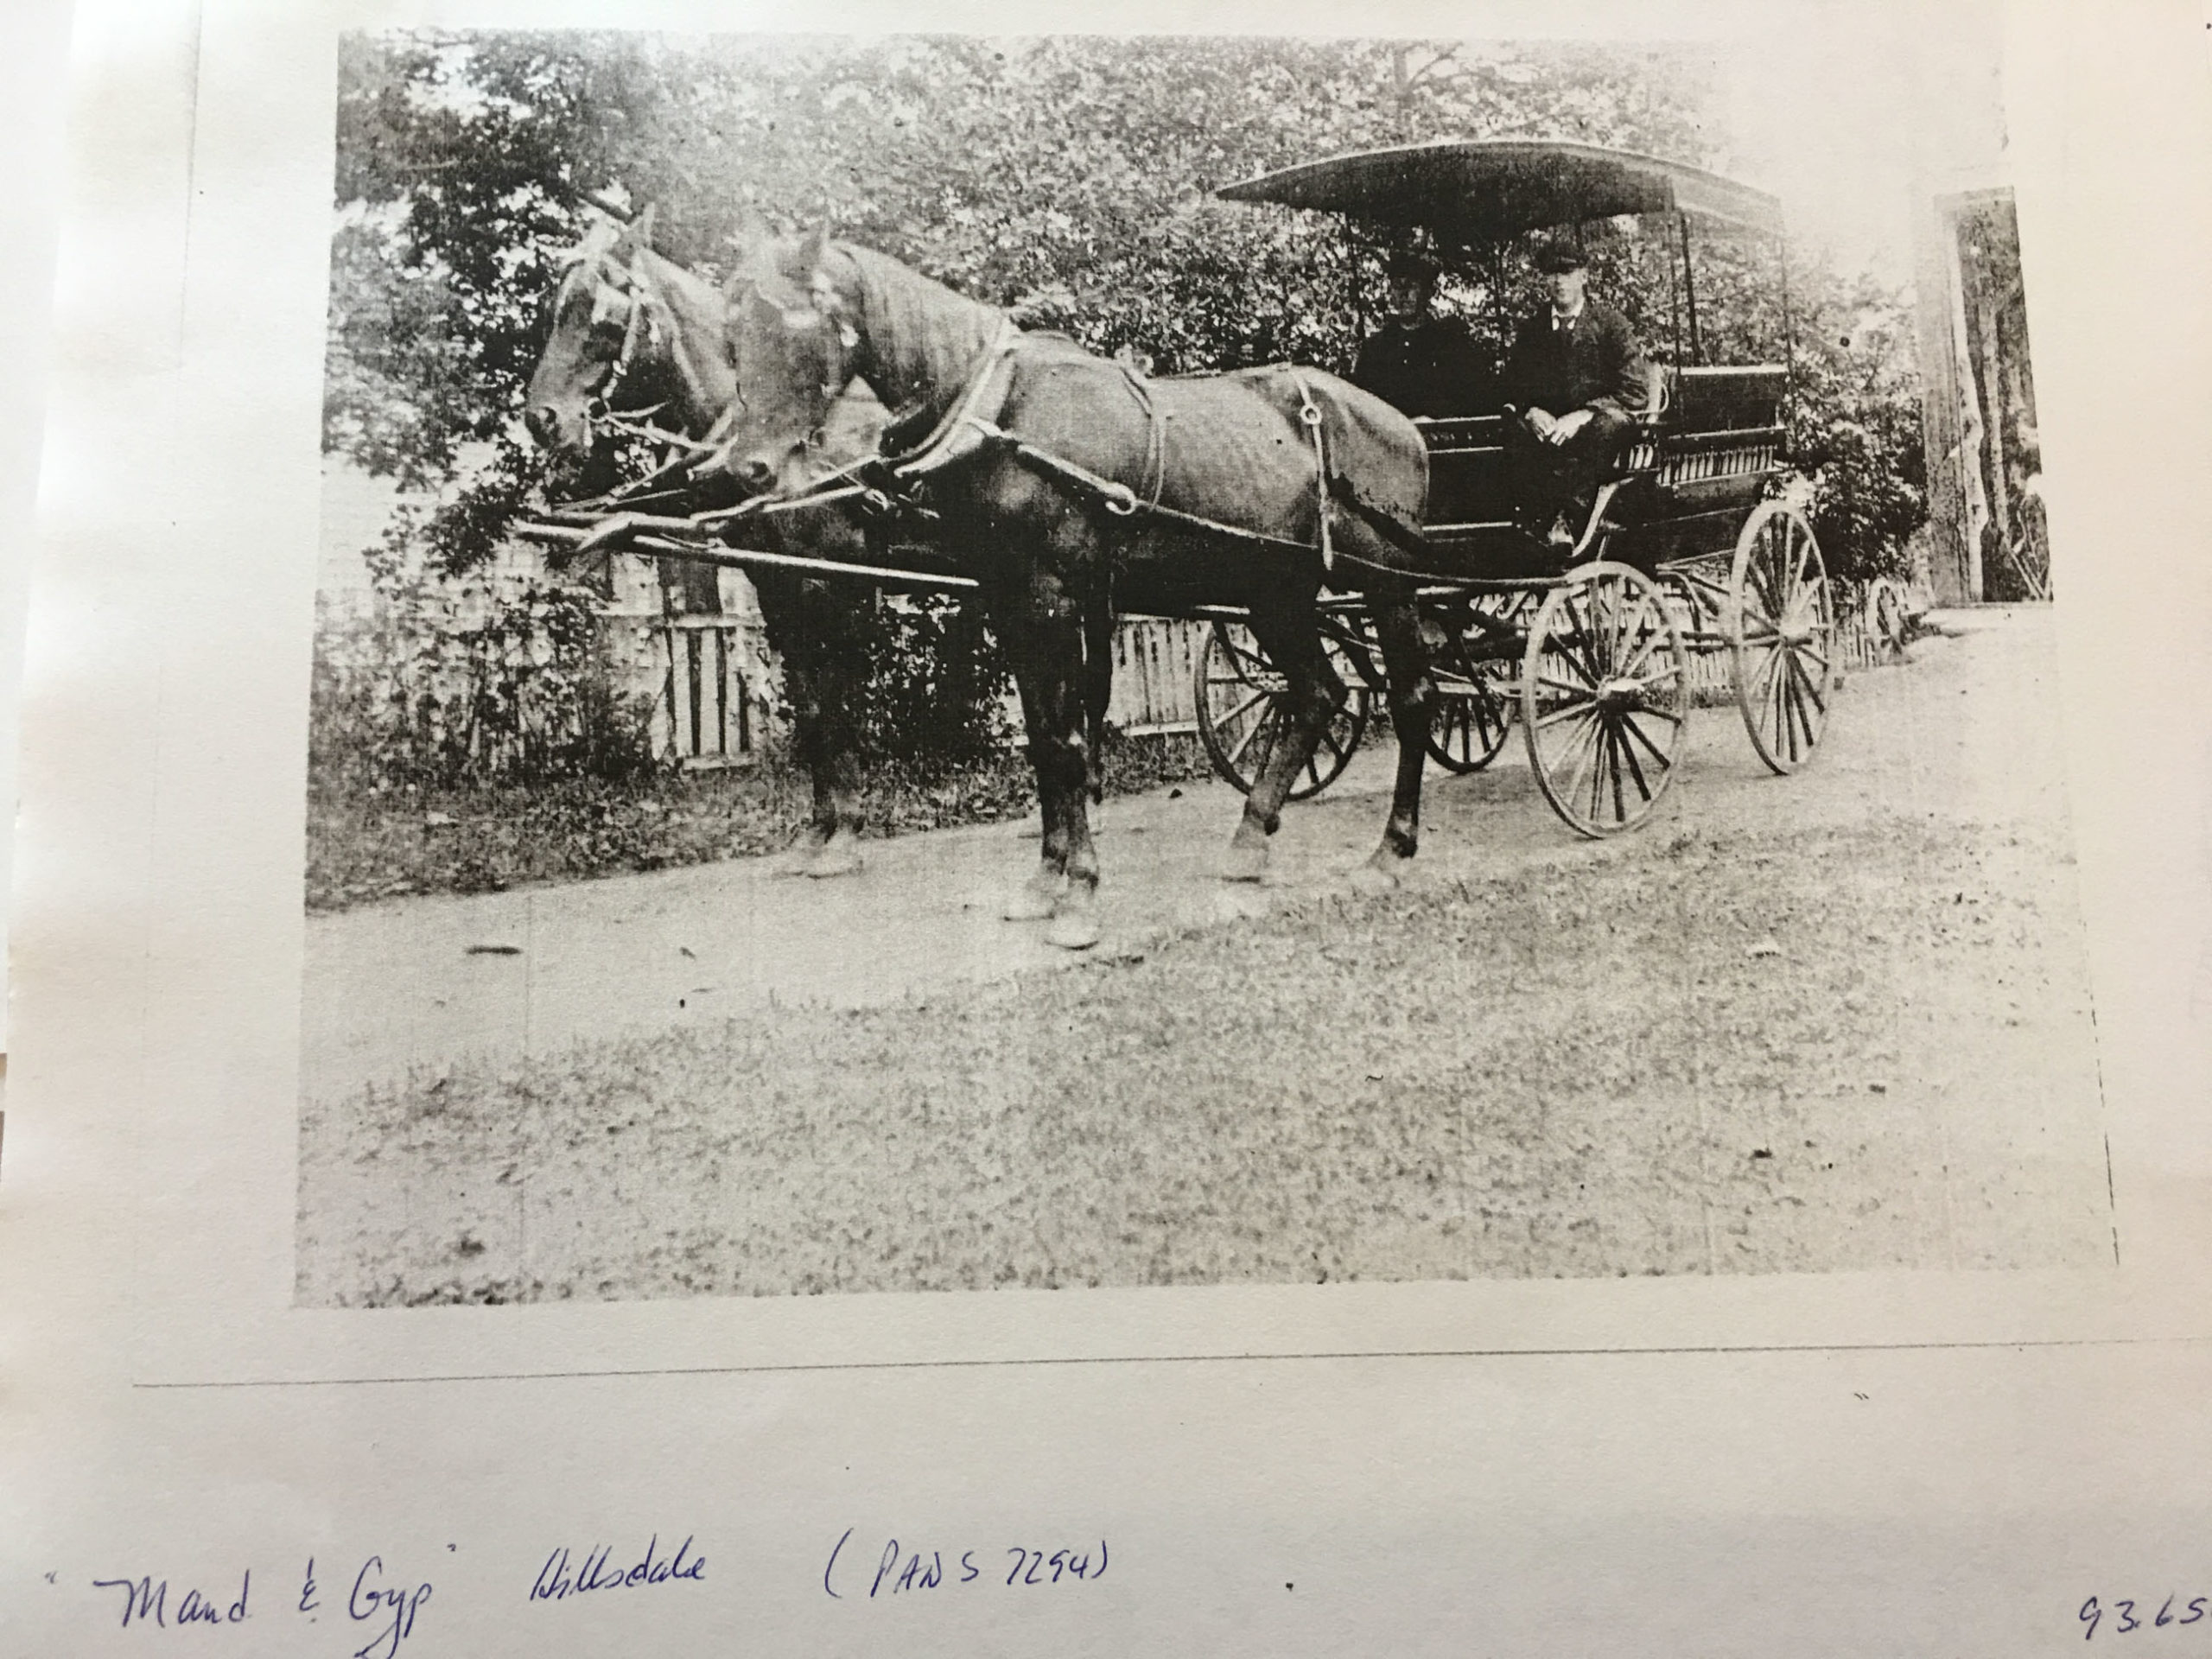 The driver of this taxi is William Perkins (not sure which one). The horses are Maud & Gyp. (source: Annapolis Historical Society)